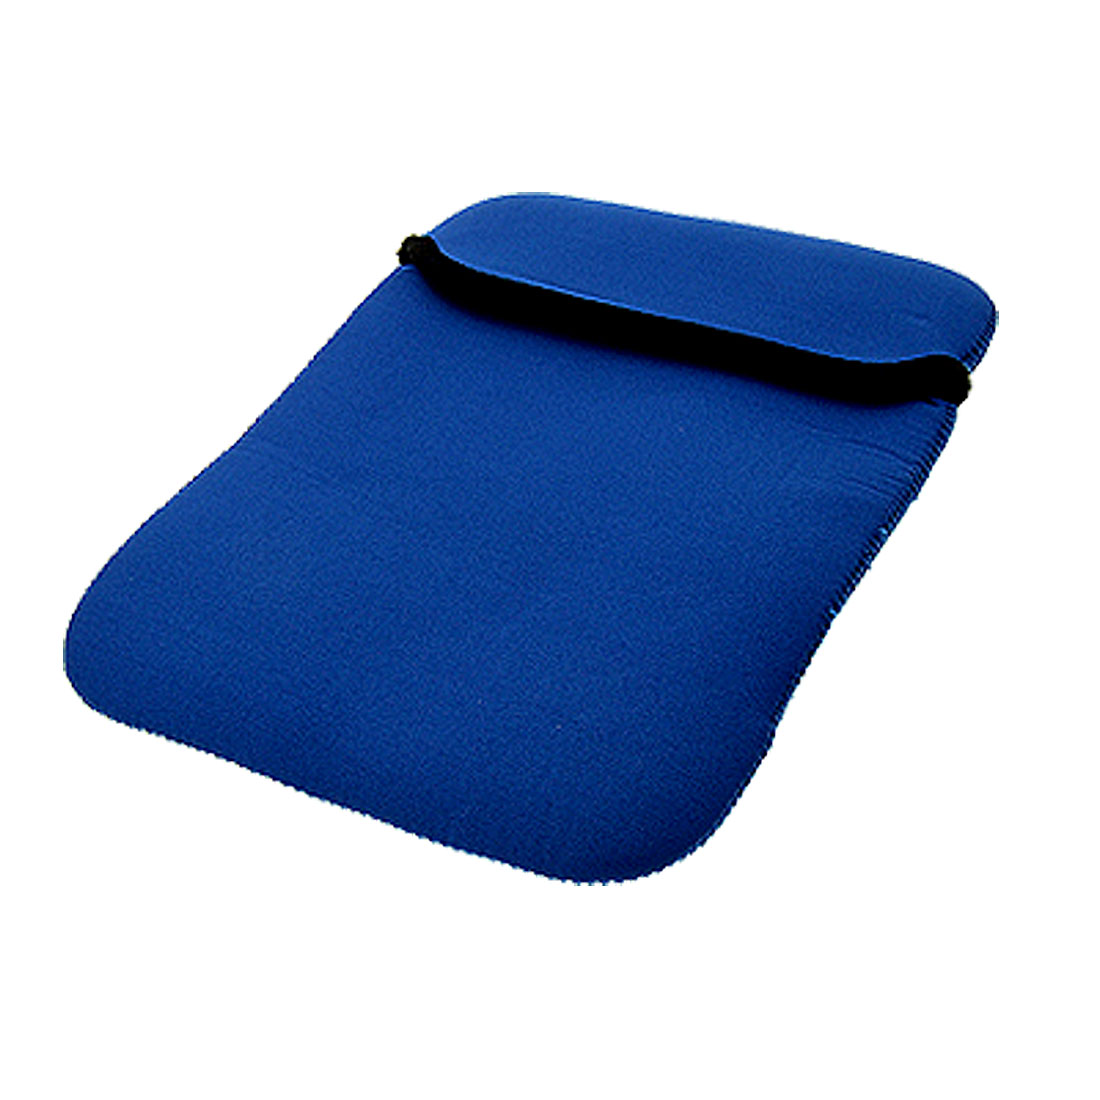 "10"" 10.1"" 10.2"" Blue Soft Neoprene Tablet PC Sleeve Bag Case"